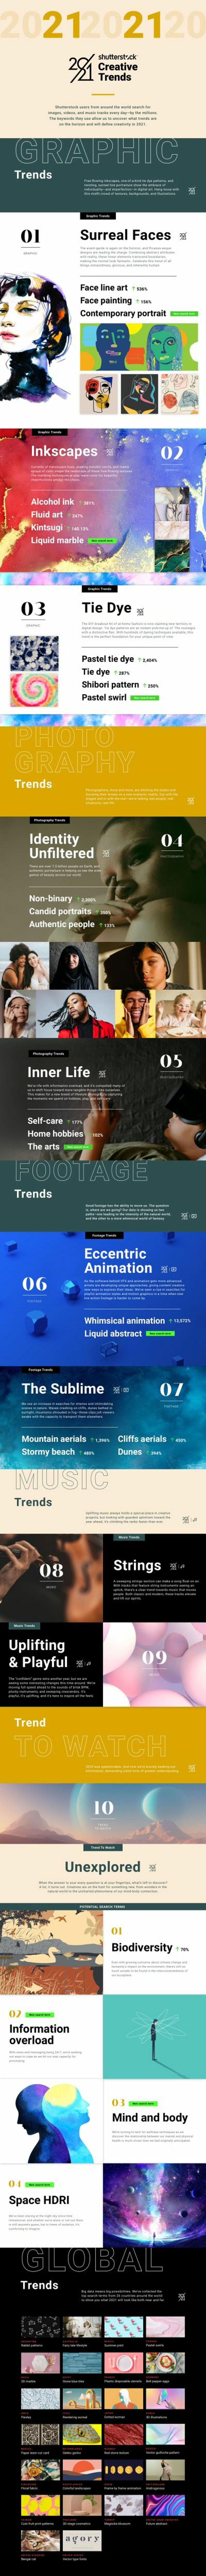 10 must-know creative trends for 2021